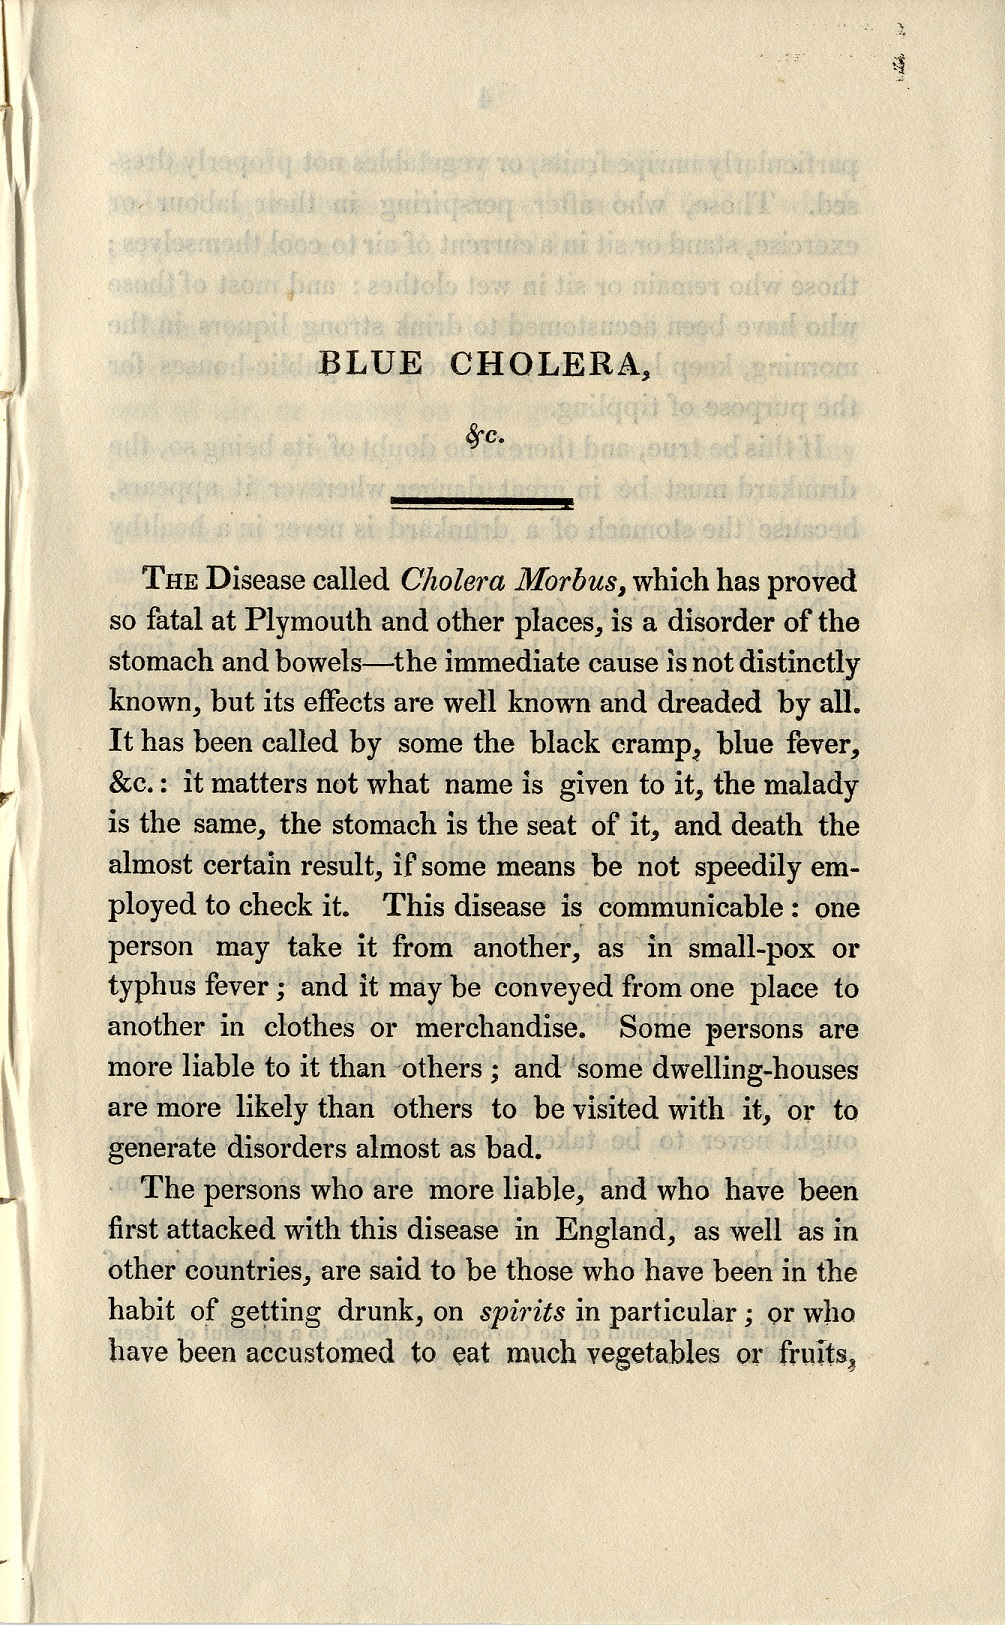 Scan of publication about cholera from 1832